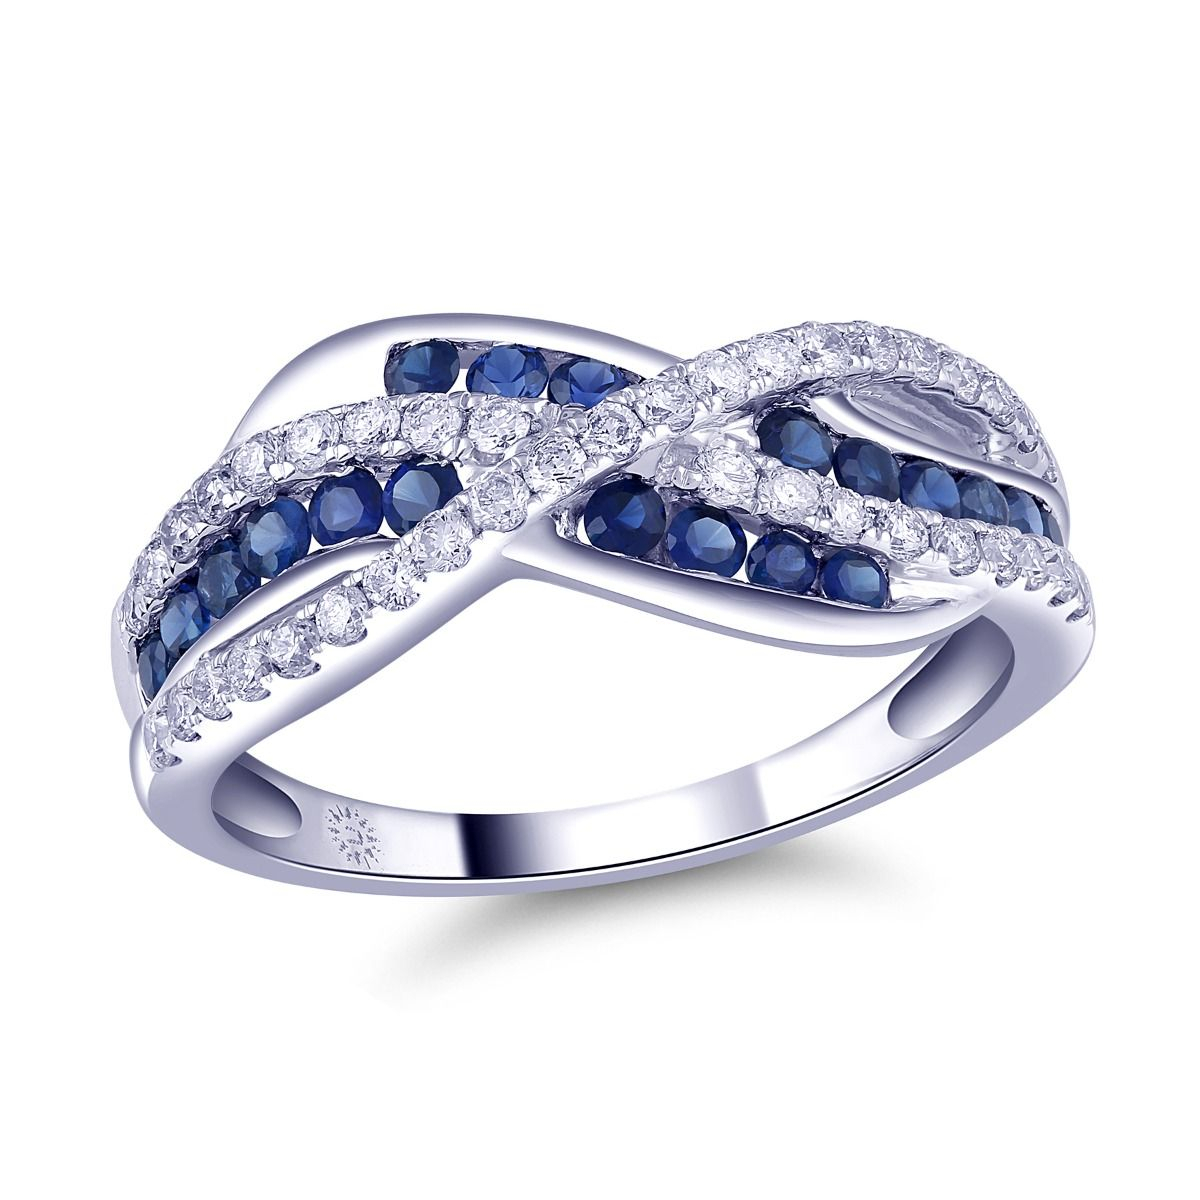 Genuine Sapphire And Diamond Multi Row Anniversary Band In 14K White Gold,  3/8Ctw Intended For Most Recently Released Diamond Multi Row Anniversary Rings In White Gold (View 16 of 25)